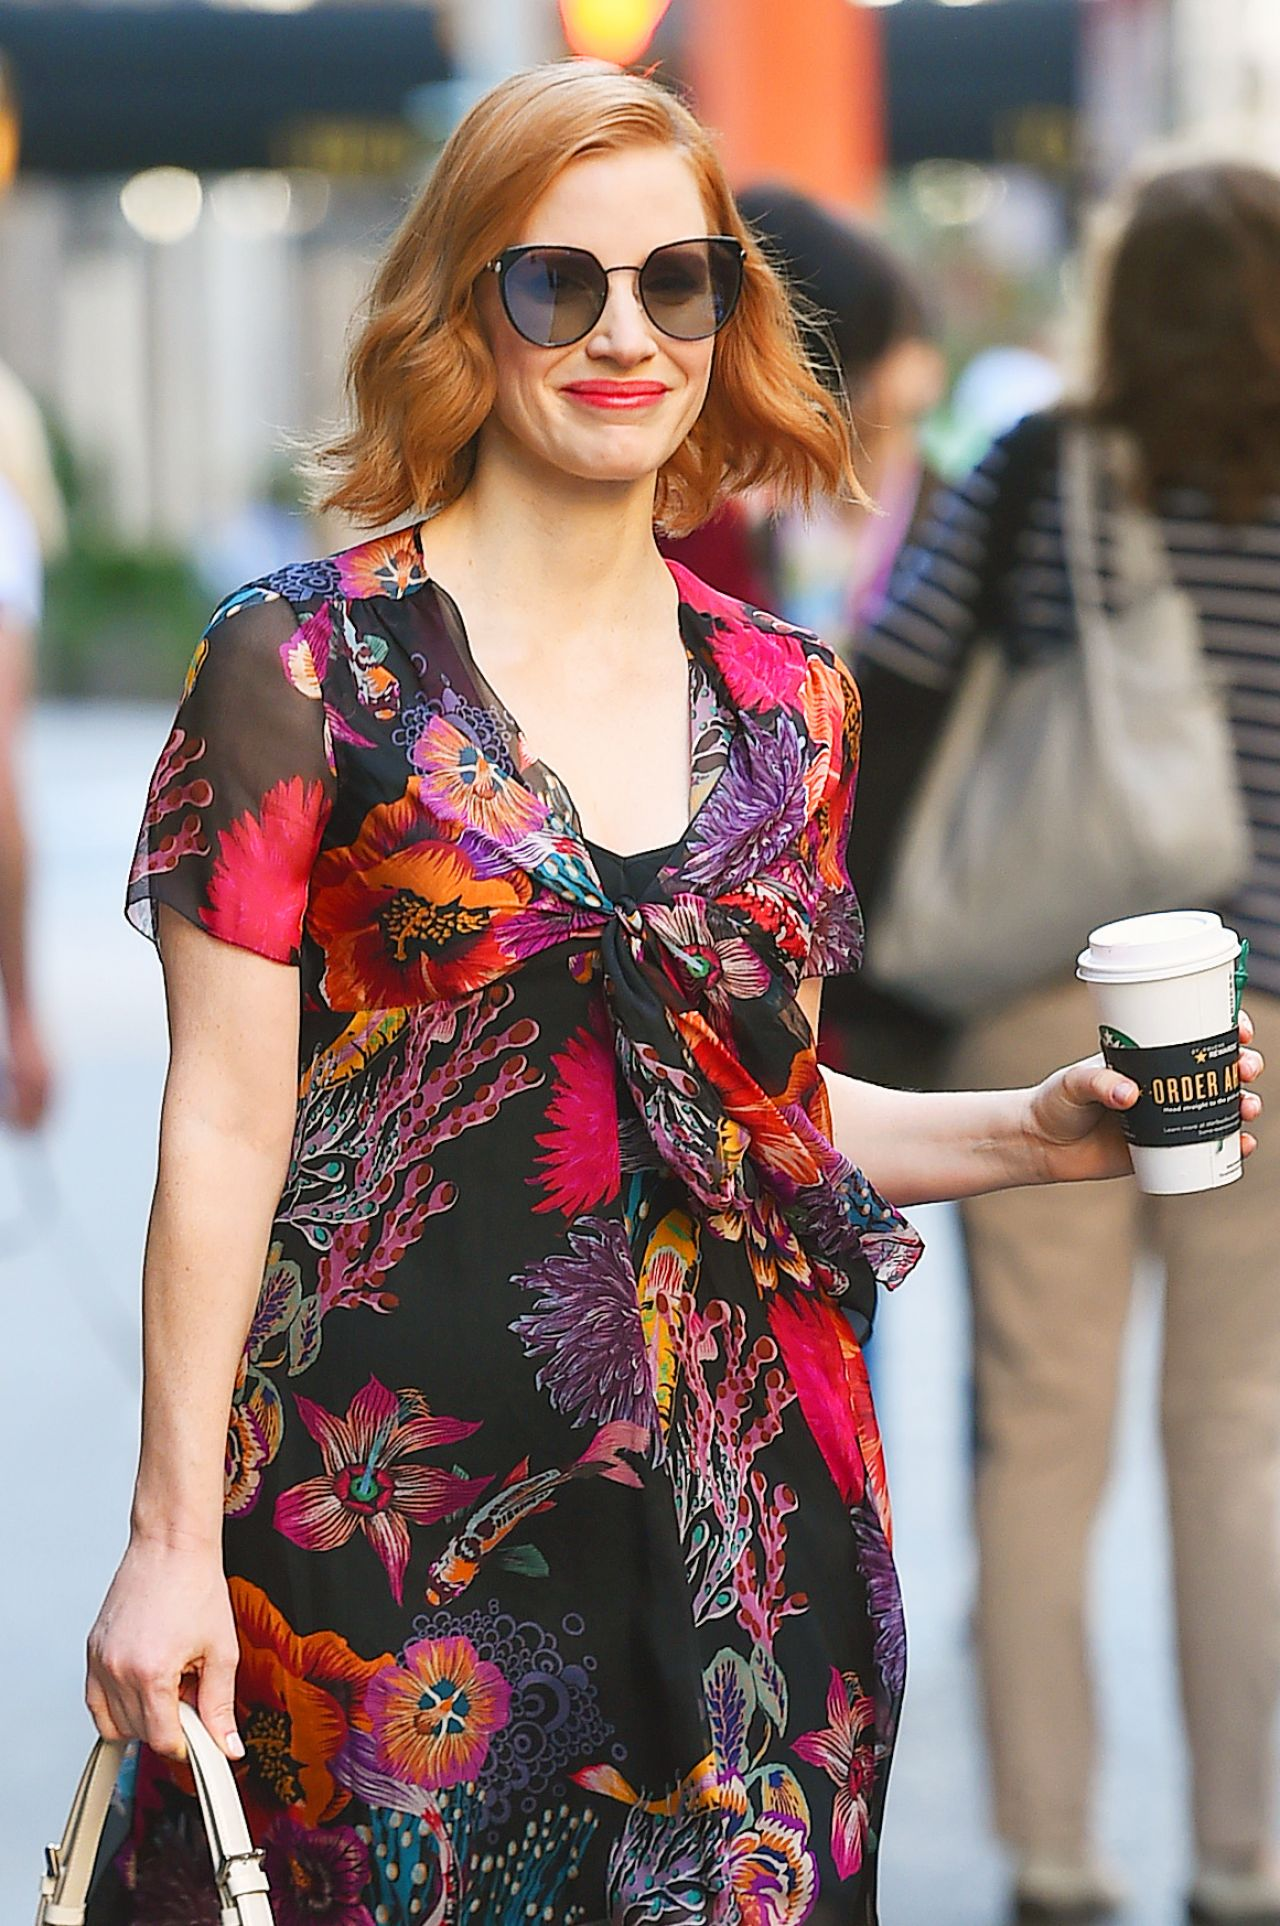 https://celebmafia.com/wp-content/uploads/2018/06/jessica-chastain-out-in-manhattan-06-26-2018-6.jpg